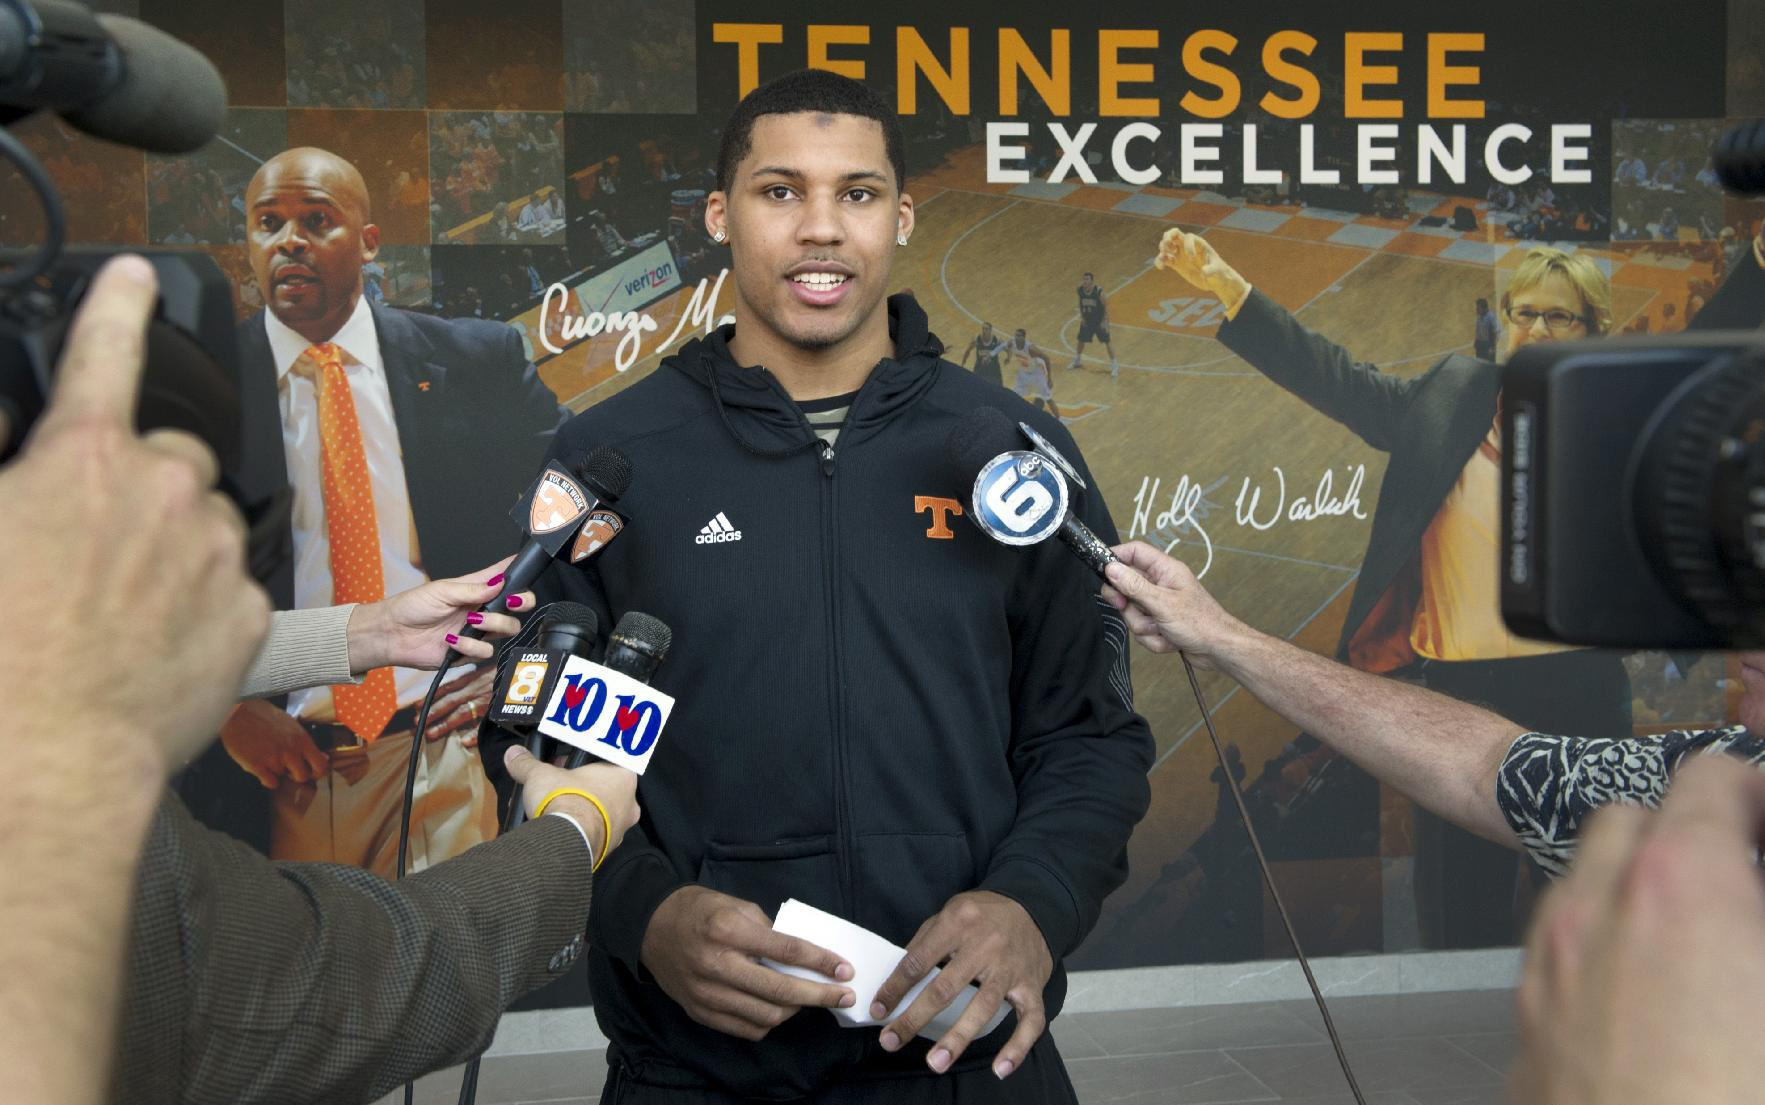 Tennessee's Jarnell Stokes announces he is bypassing his senior season to enter the NBA basketball draft in Knoxville, Tenn., Friday, April 11, 2014. Stokes averaged 15.1 points and 10.6 rebounds per game to earn first-team all-Southeastern Conference honors this season while helping Tennessee go 24-13 and reach the Midwest Regional semifinals